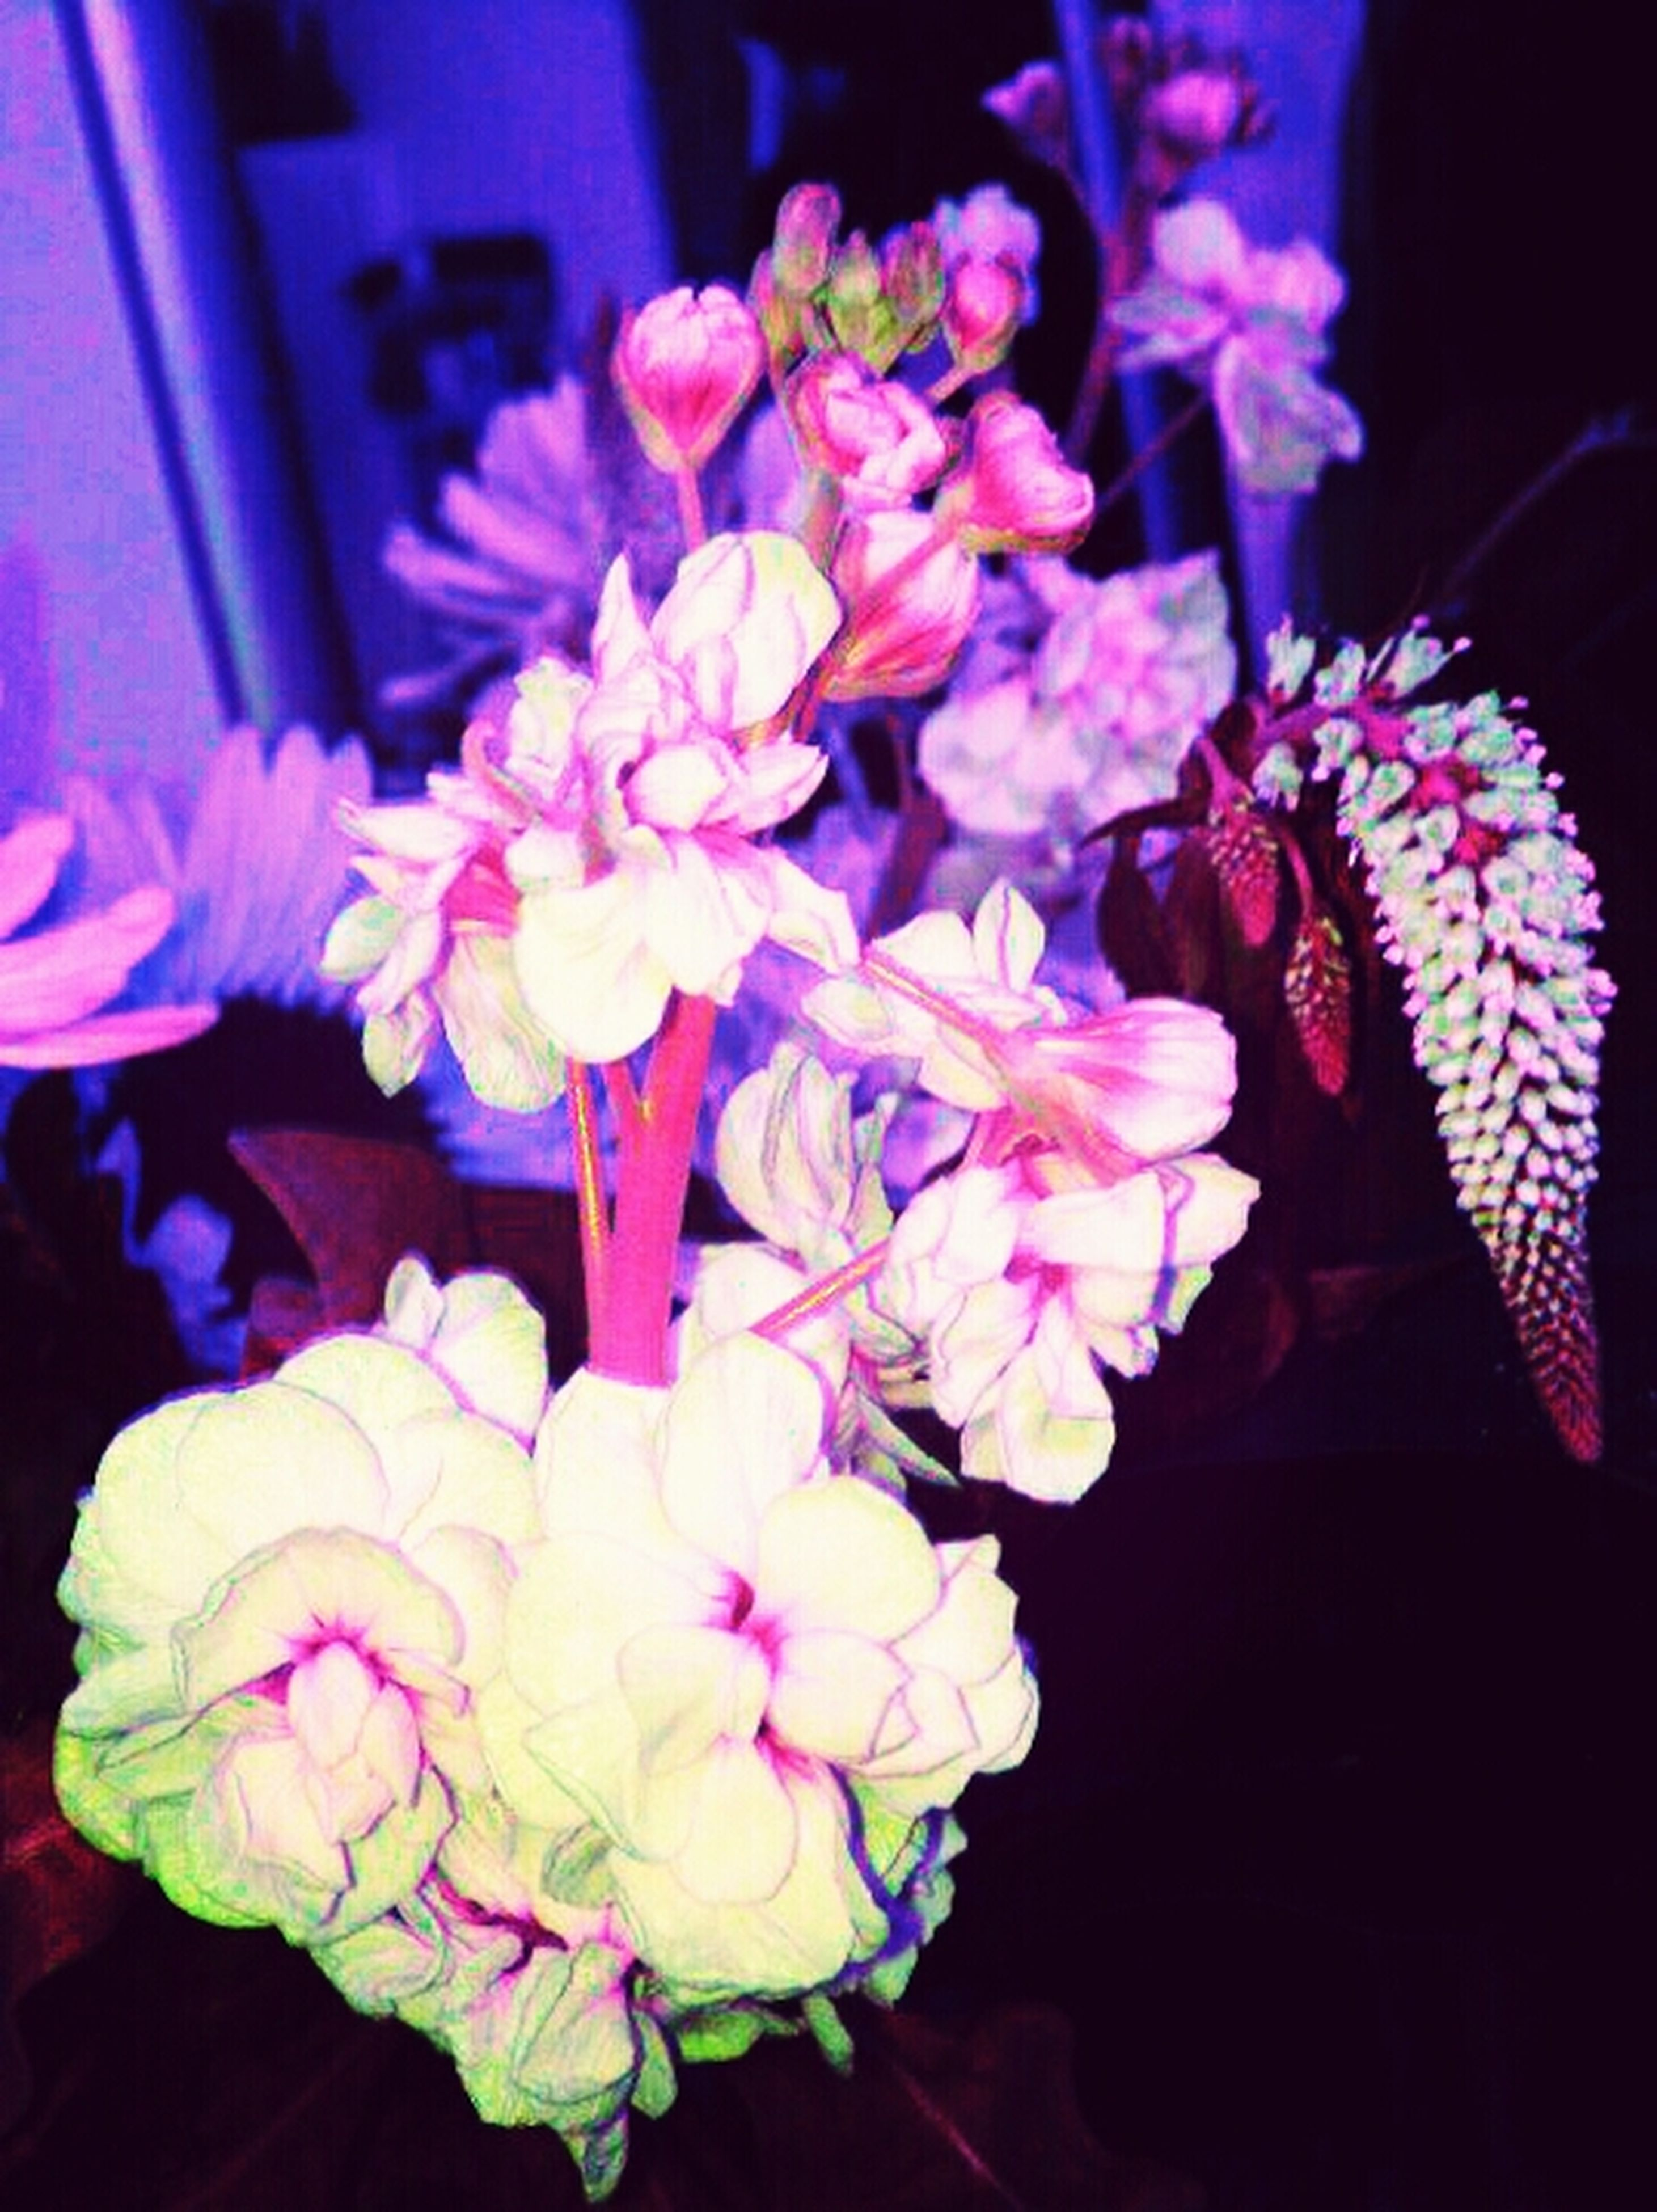 flower, indoors, petal, fragility, flower head, freshness, close-up, pink color, night, beauty in nature, growth, nature, purple, high angle view, bunch of flowers, blooming, plant, no people, black background, vase